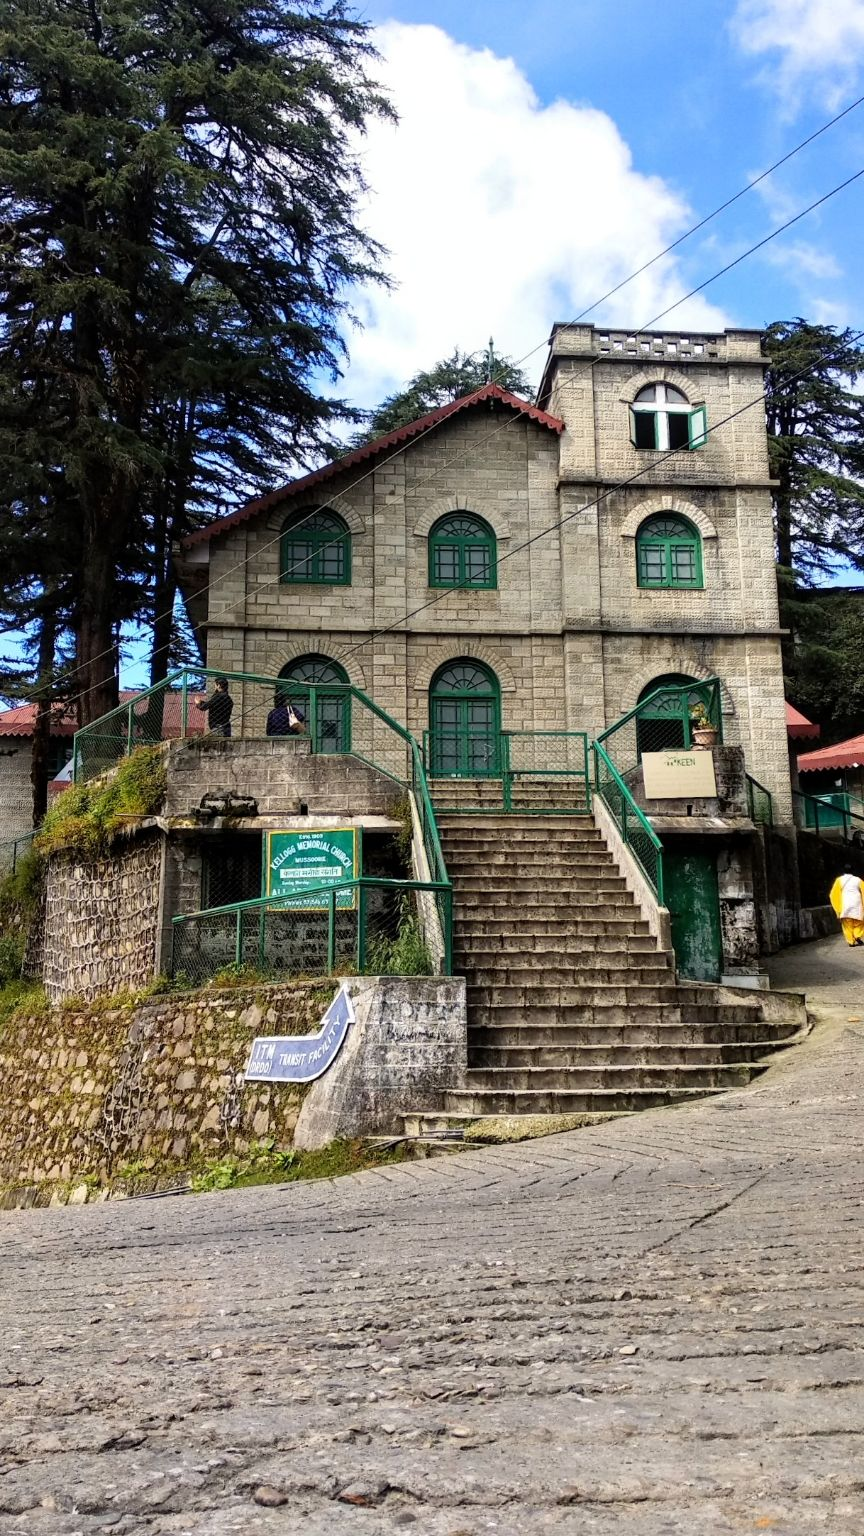 Photo of Landour By Yogender Gusain